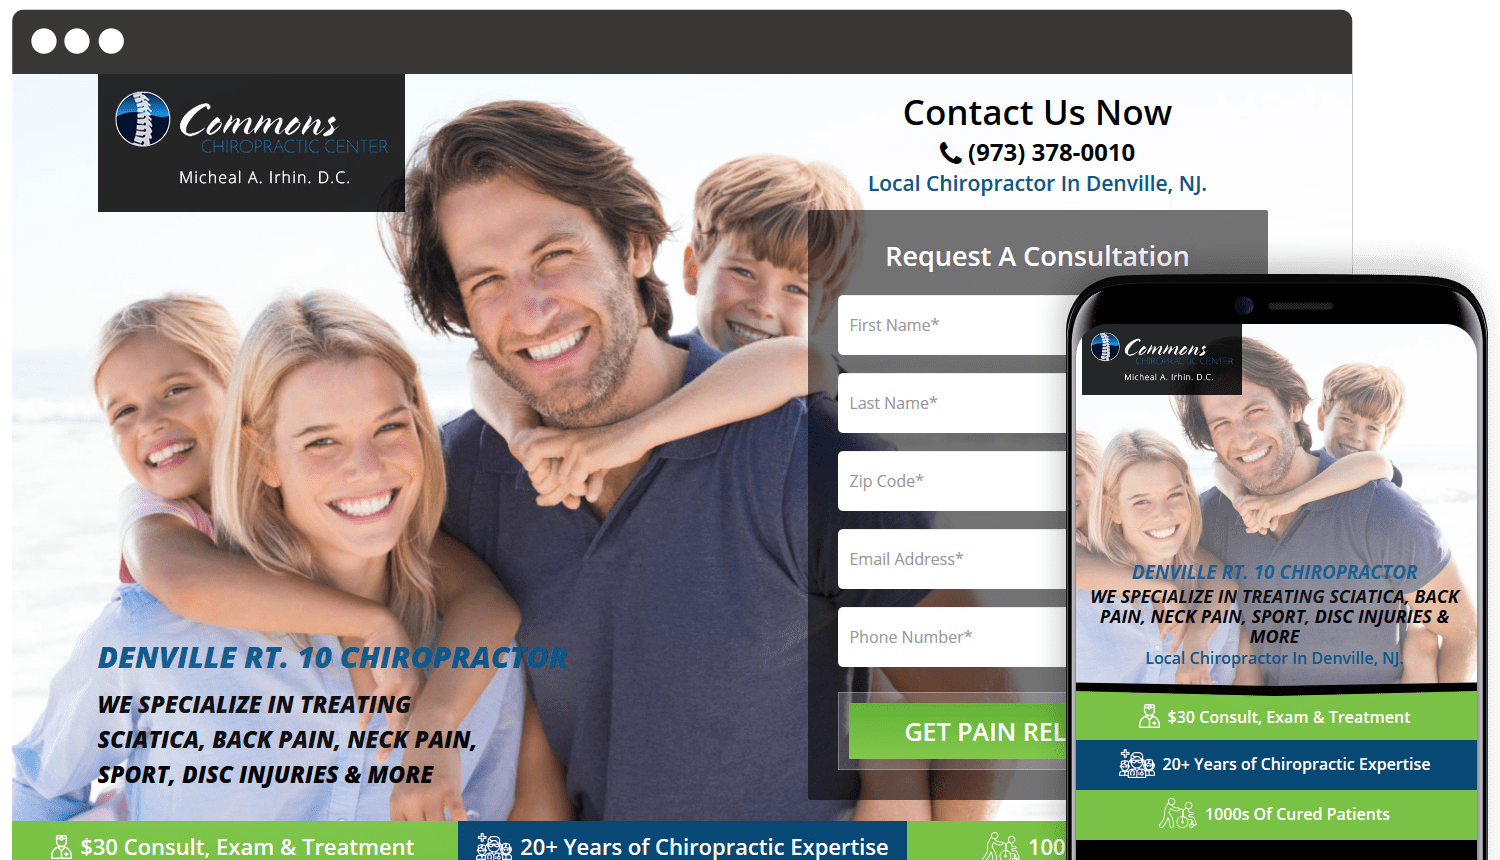 Commons Chiropractic landing page design showcase